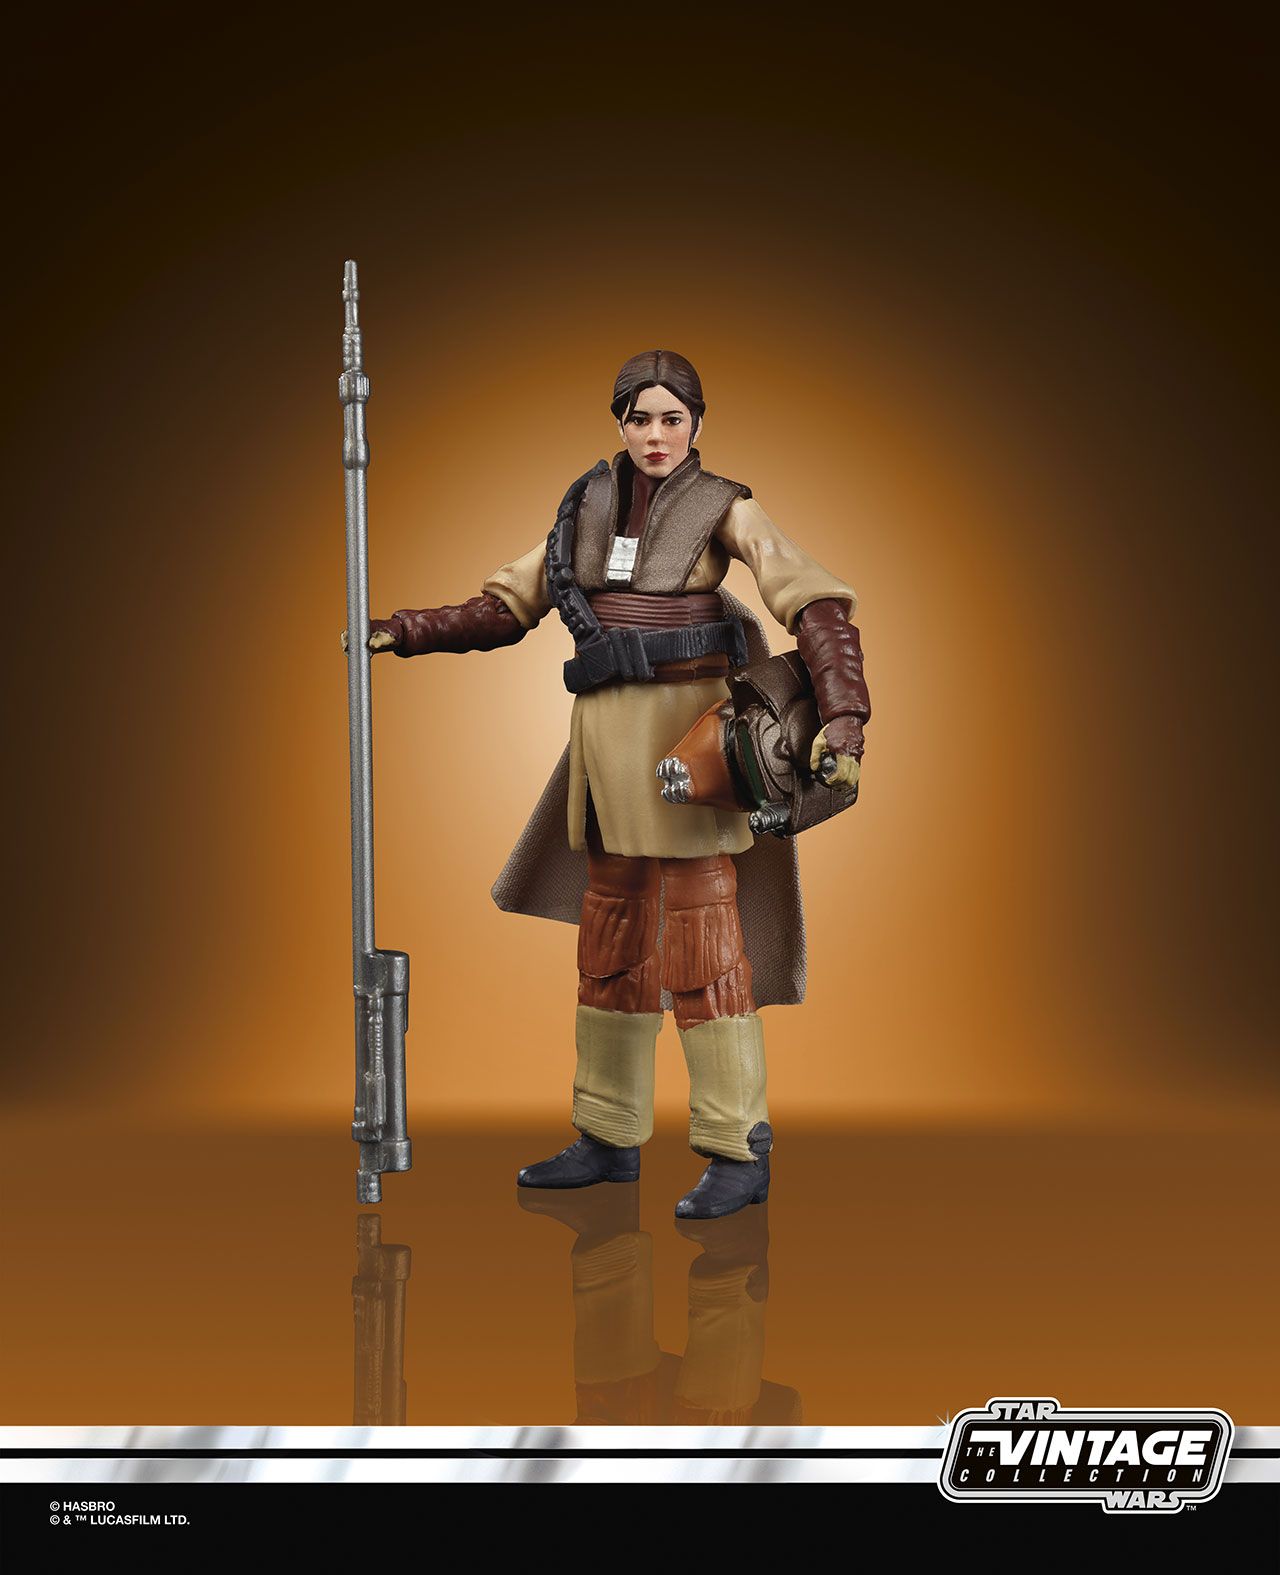 STAR WARS THE VINTAGE COLLECTION FIGURE Leia Boushh (PhotoReal 2)